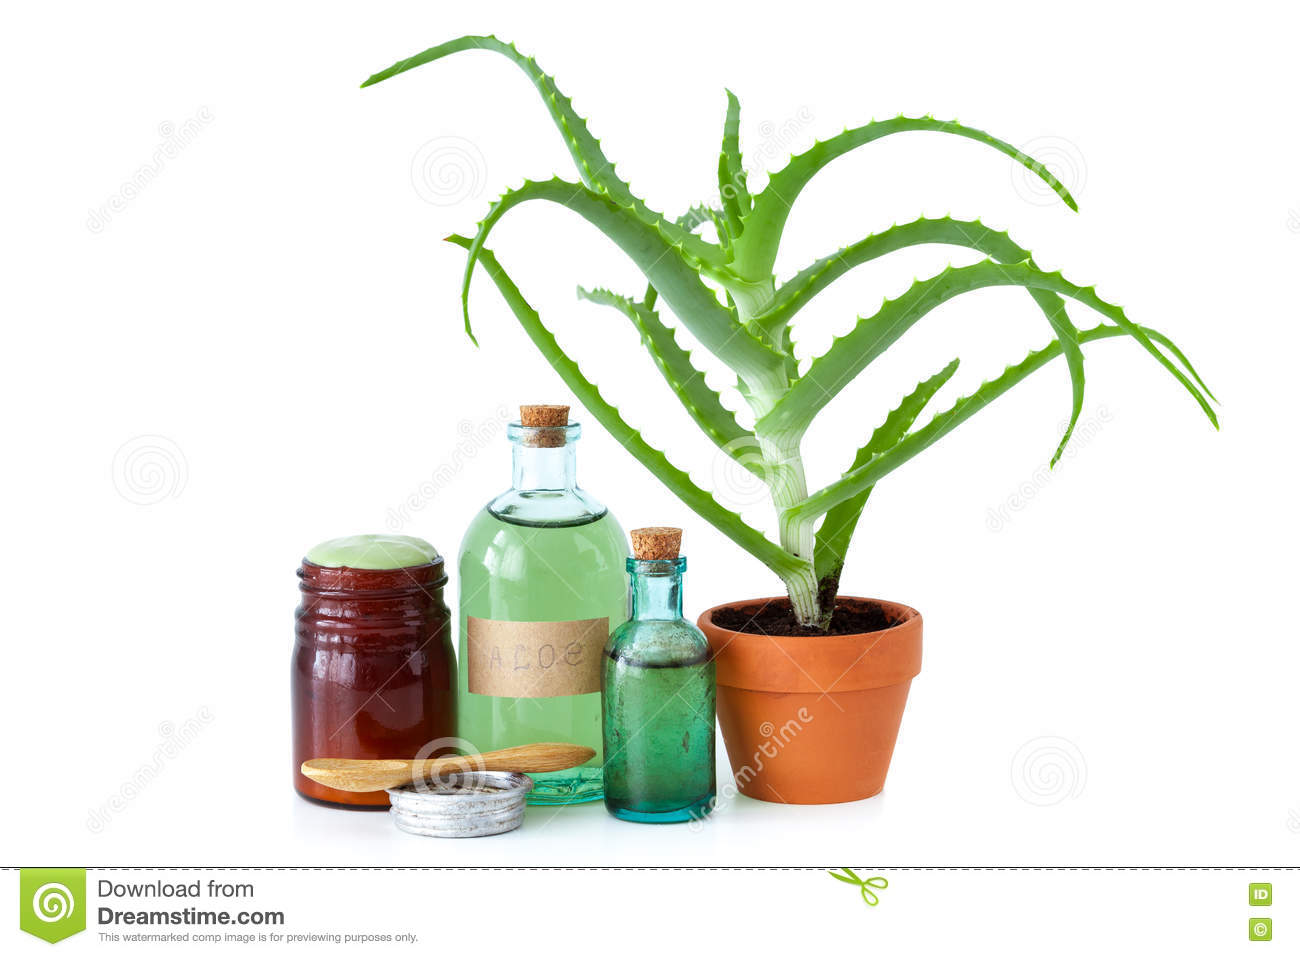 Aloe plant, aloe vera essence, cream and other products on white.